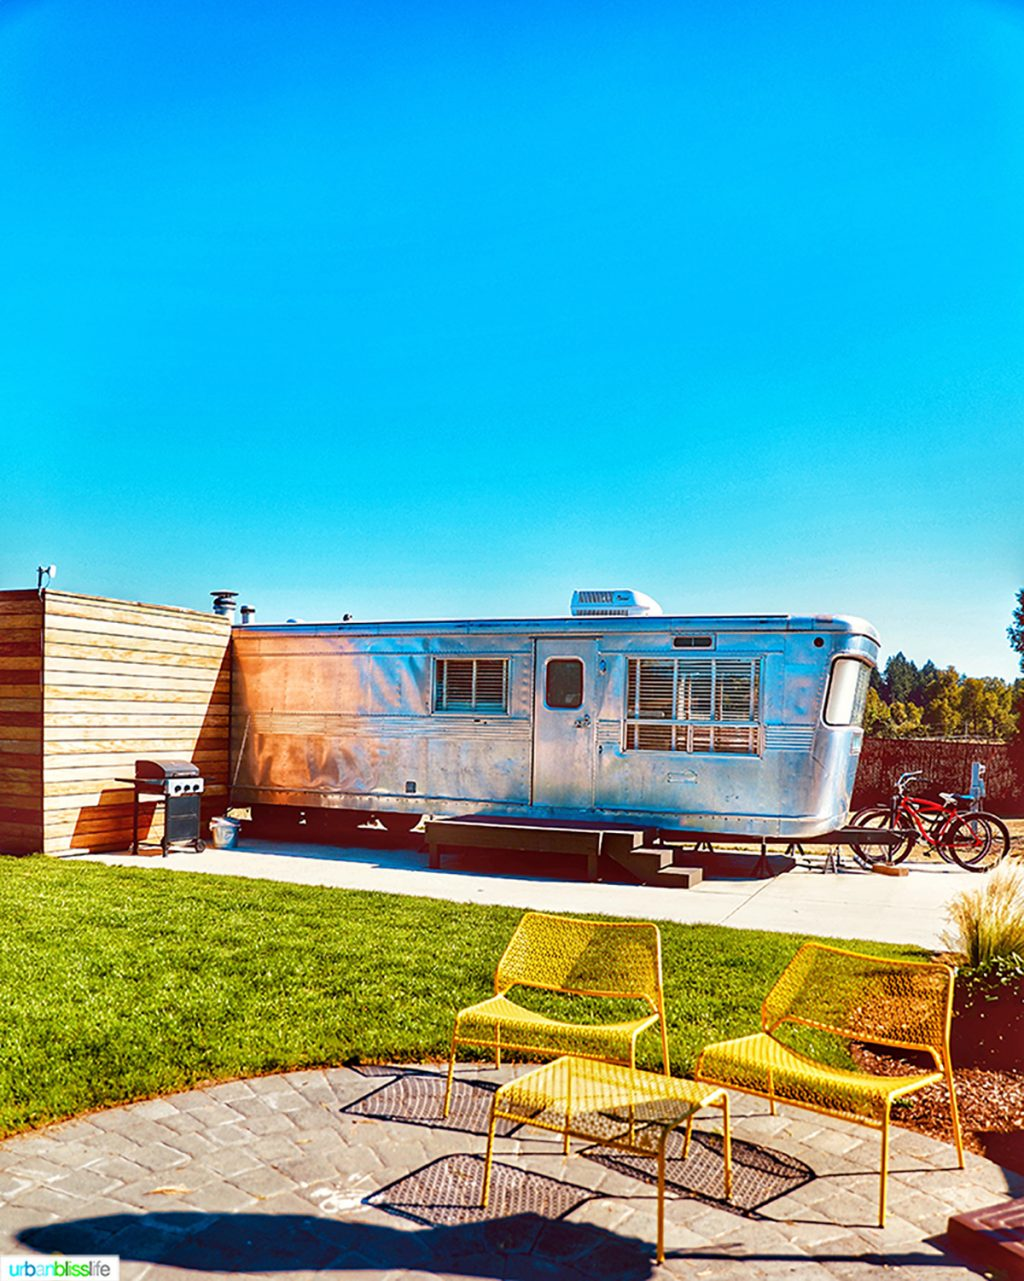 Exterior of the mansion airstream and yellow chairs at Vintages Trailer Resort